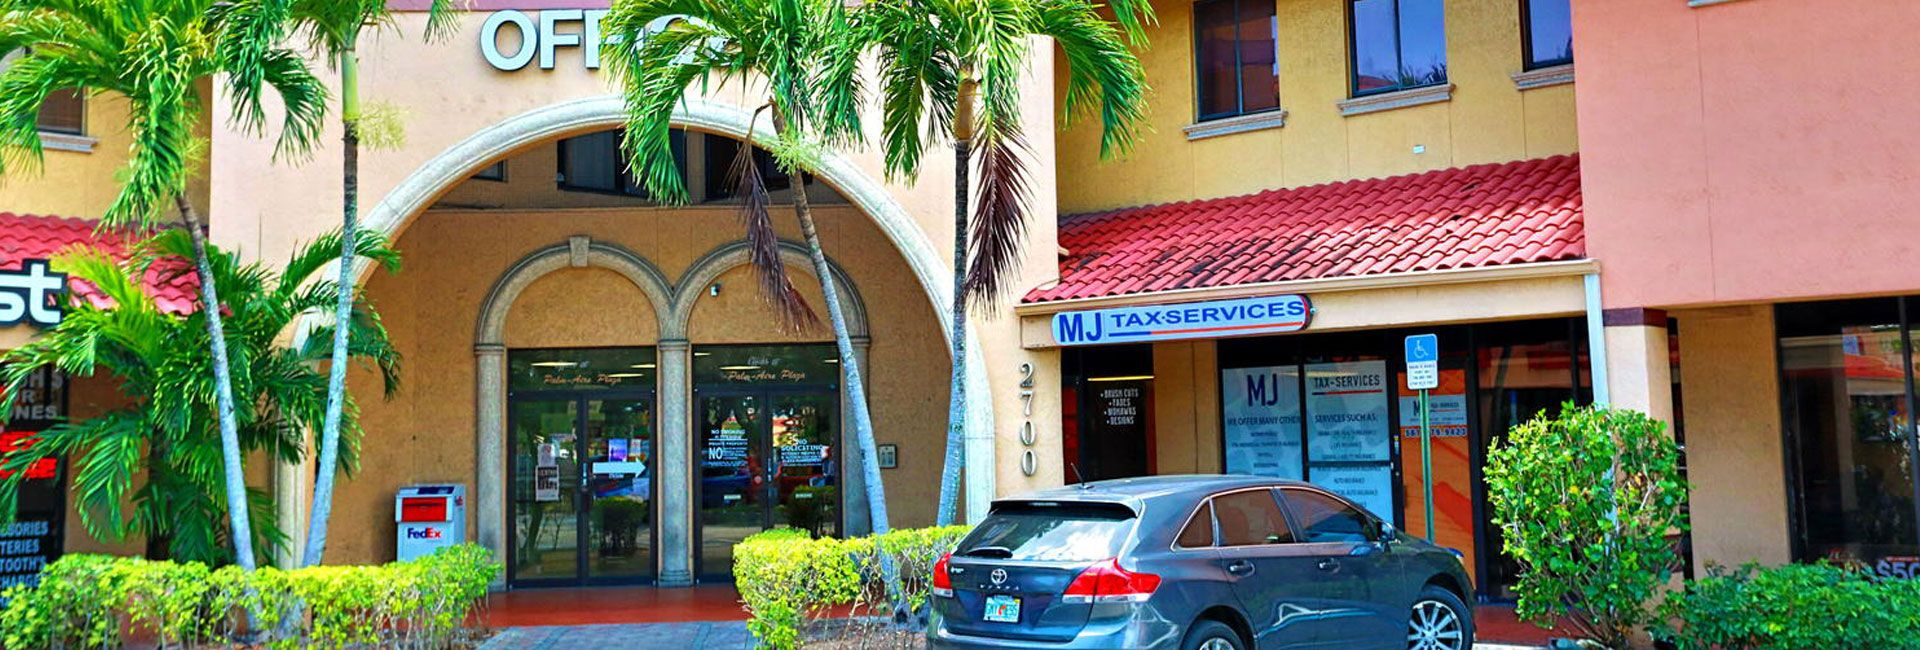 Credit repair services in pompano beach fl commercial